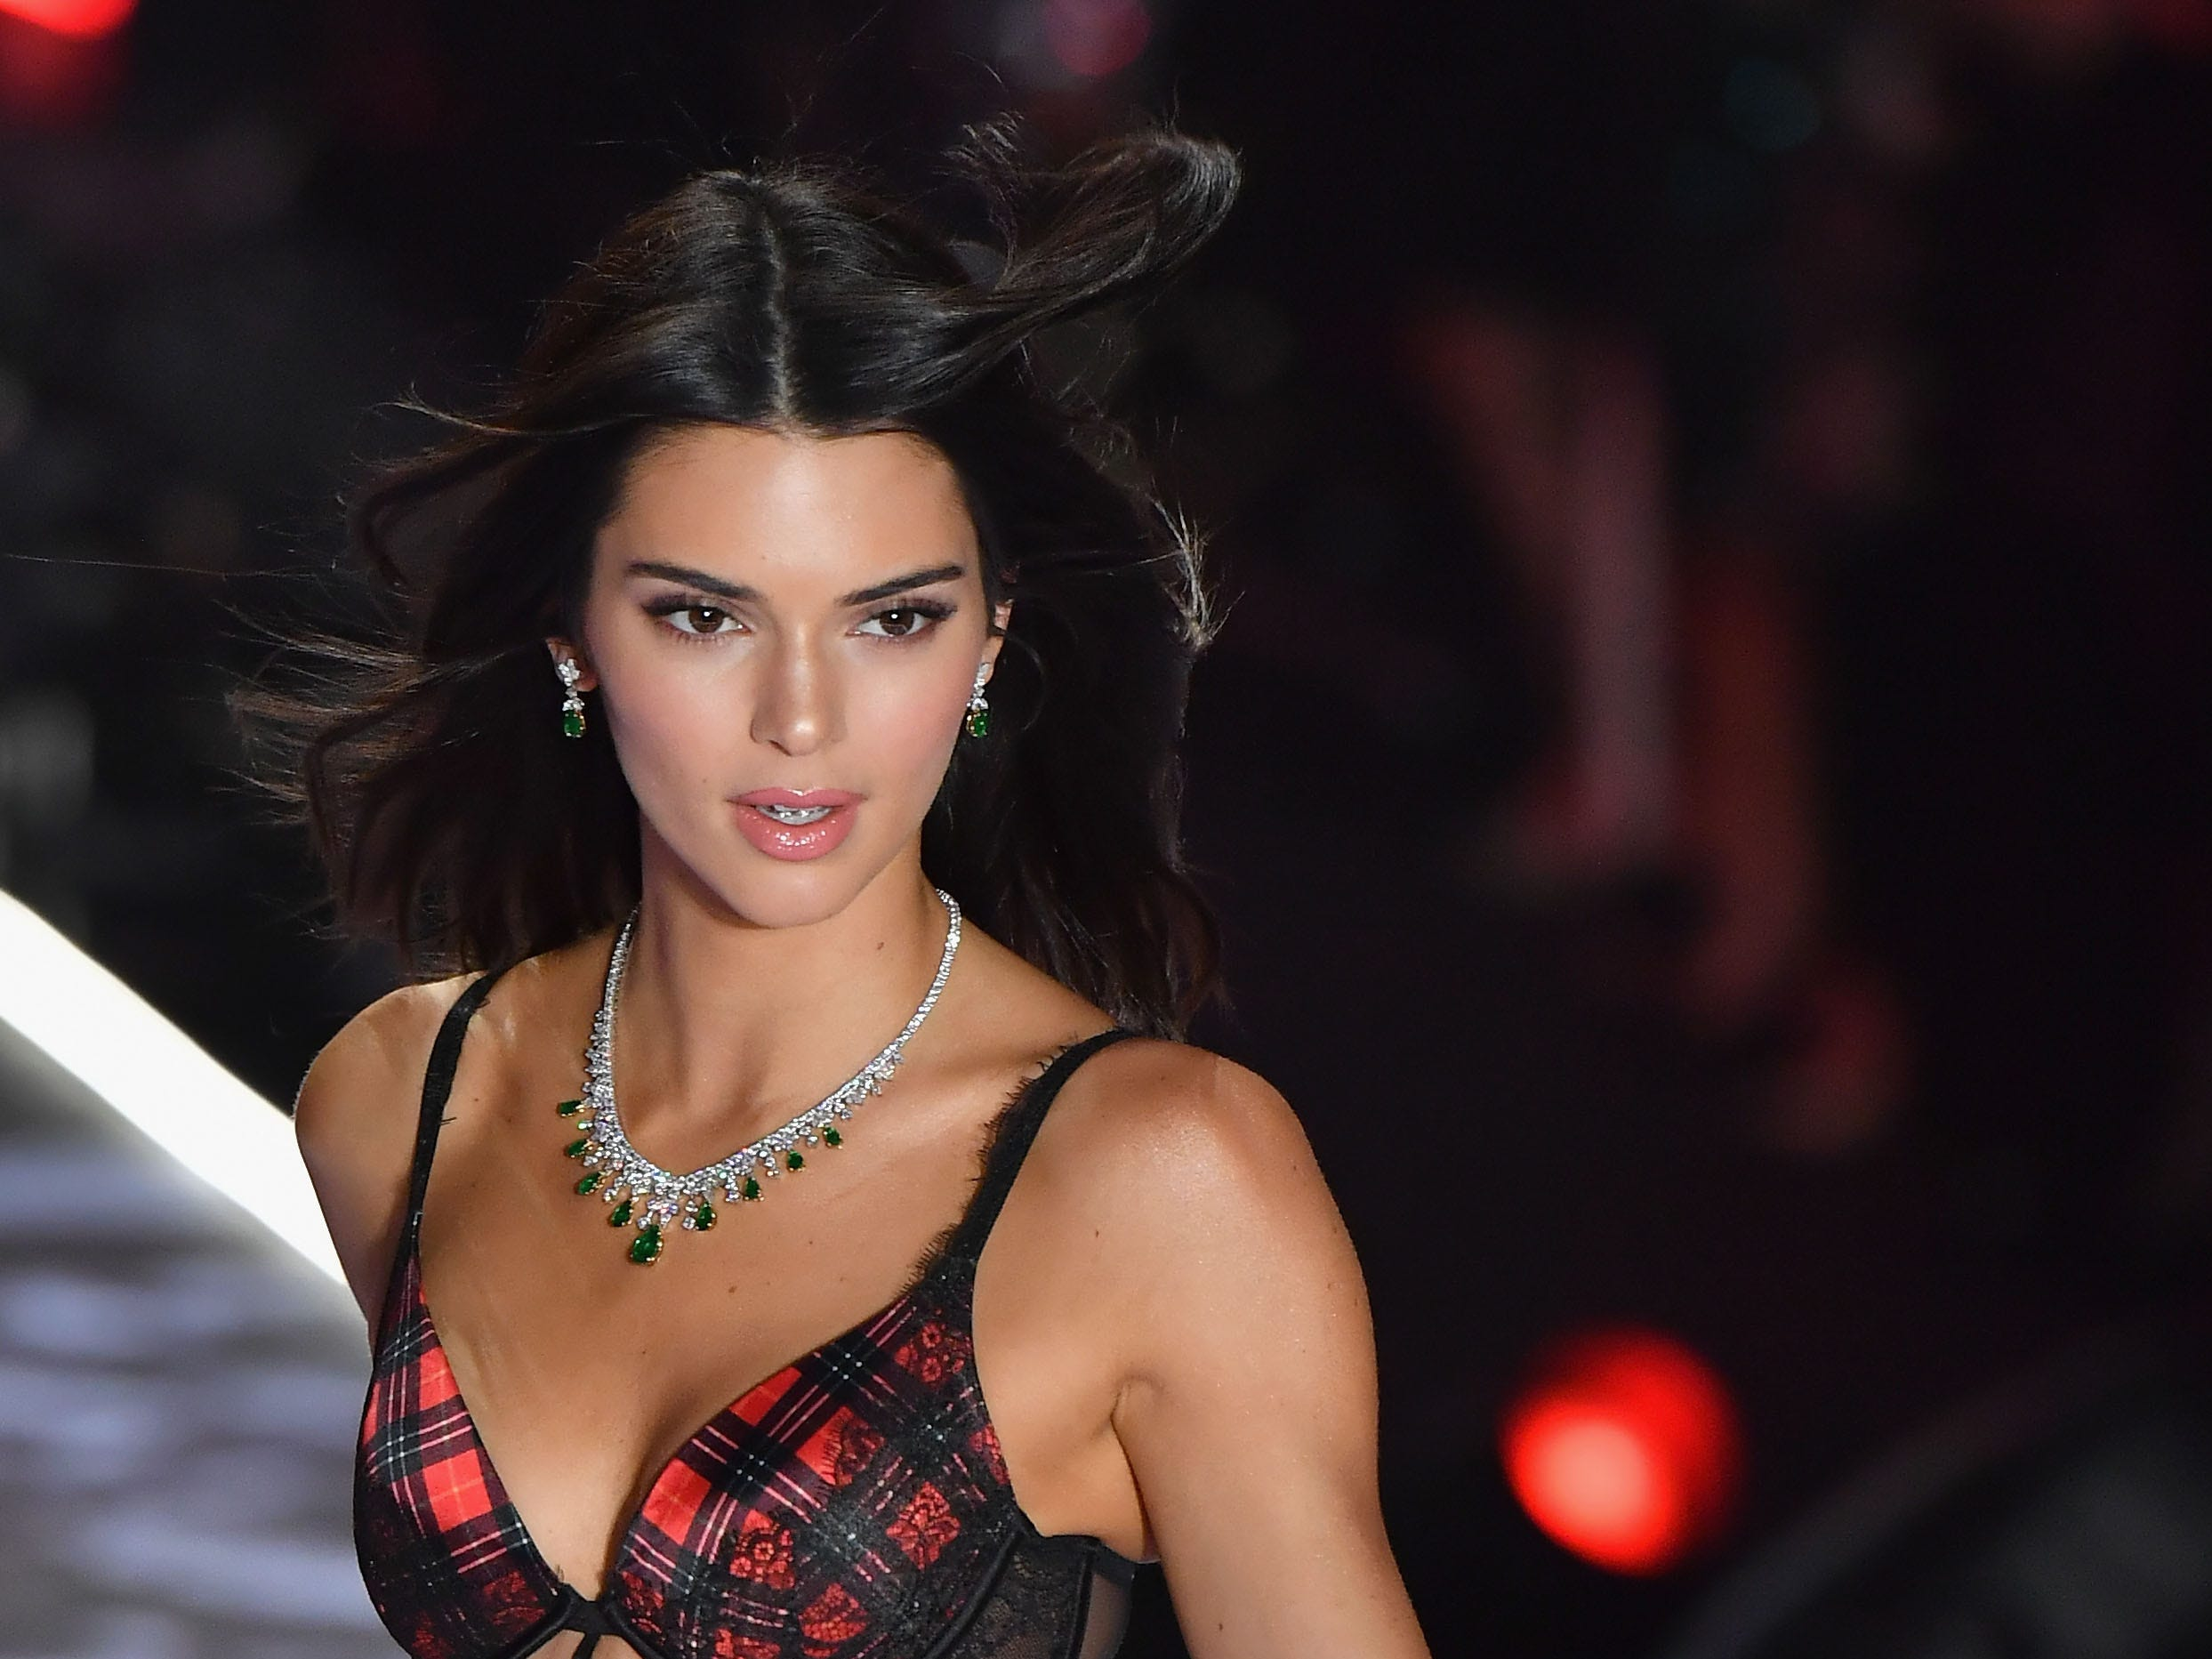 US model Kendall Jenner walks the runway at the 2018 Victoria's Secret Fashion Show on November 8, 2018 at Pier 94 in New York City. - Every year, the Victoria's Secret show brings its famous models together for what is consistently a glittery catwalk extravaganza. It's the most-watched fashion event of the year (800 million tune in annually) with around 12 million USD spent on putting the spectacle together according to Harper's Bazaar. (Photo by Angela Weiss / AFP)ANGELA WEISS/AFP/Getty Images ORIG FILE ID: AFP_1AP078